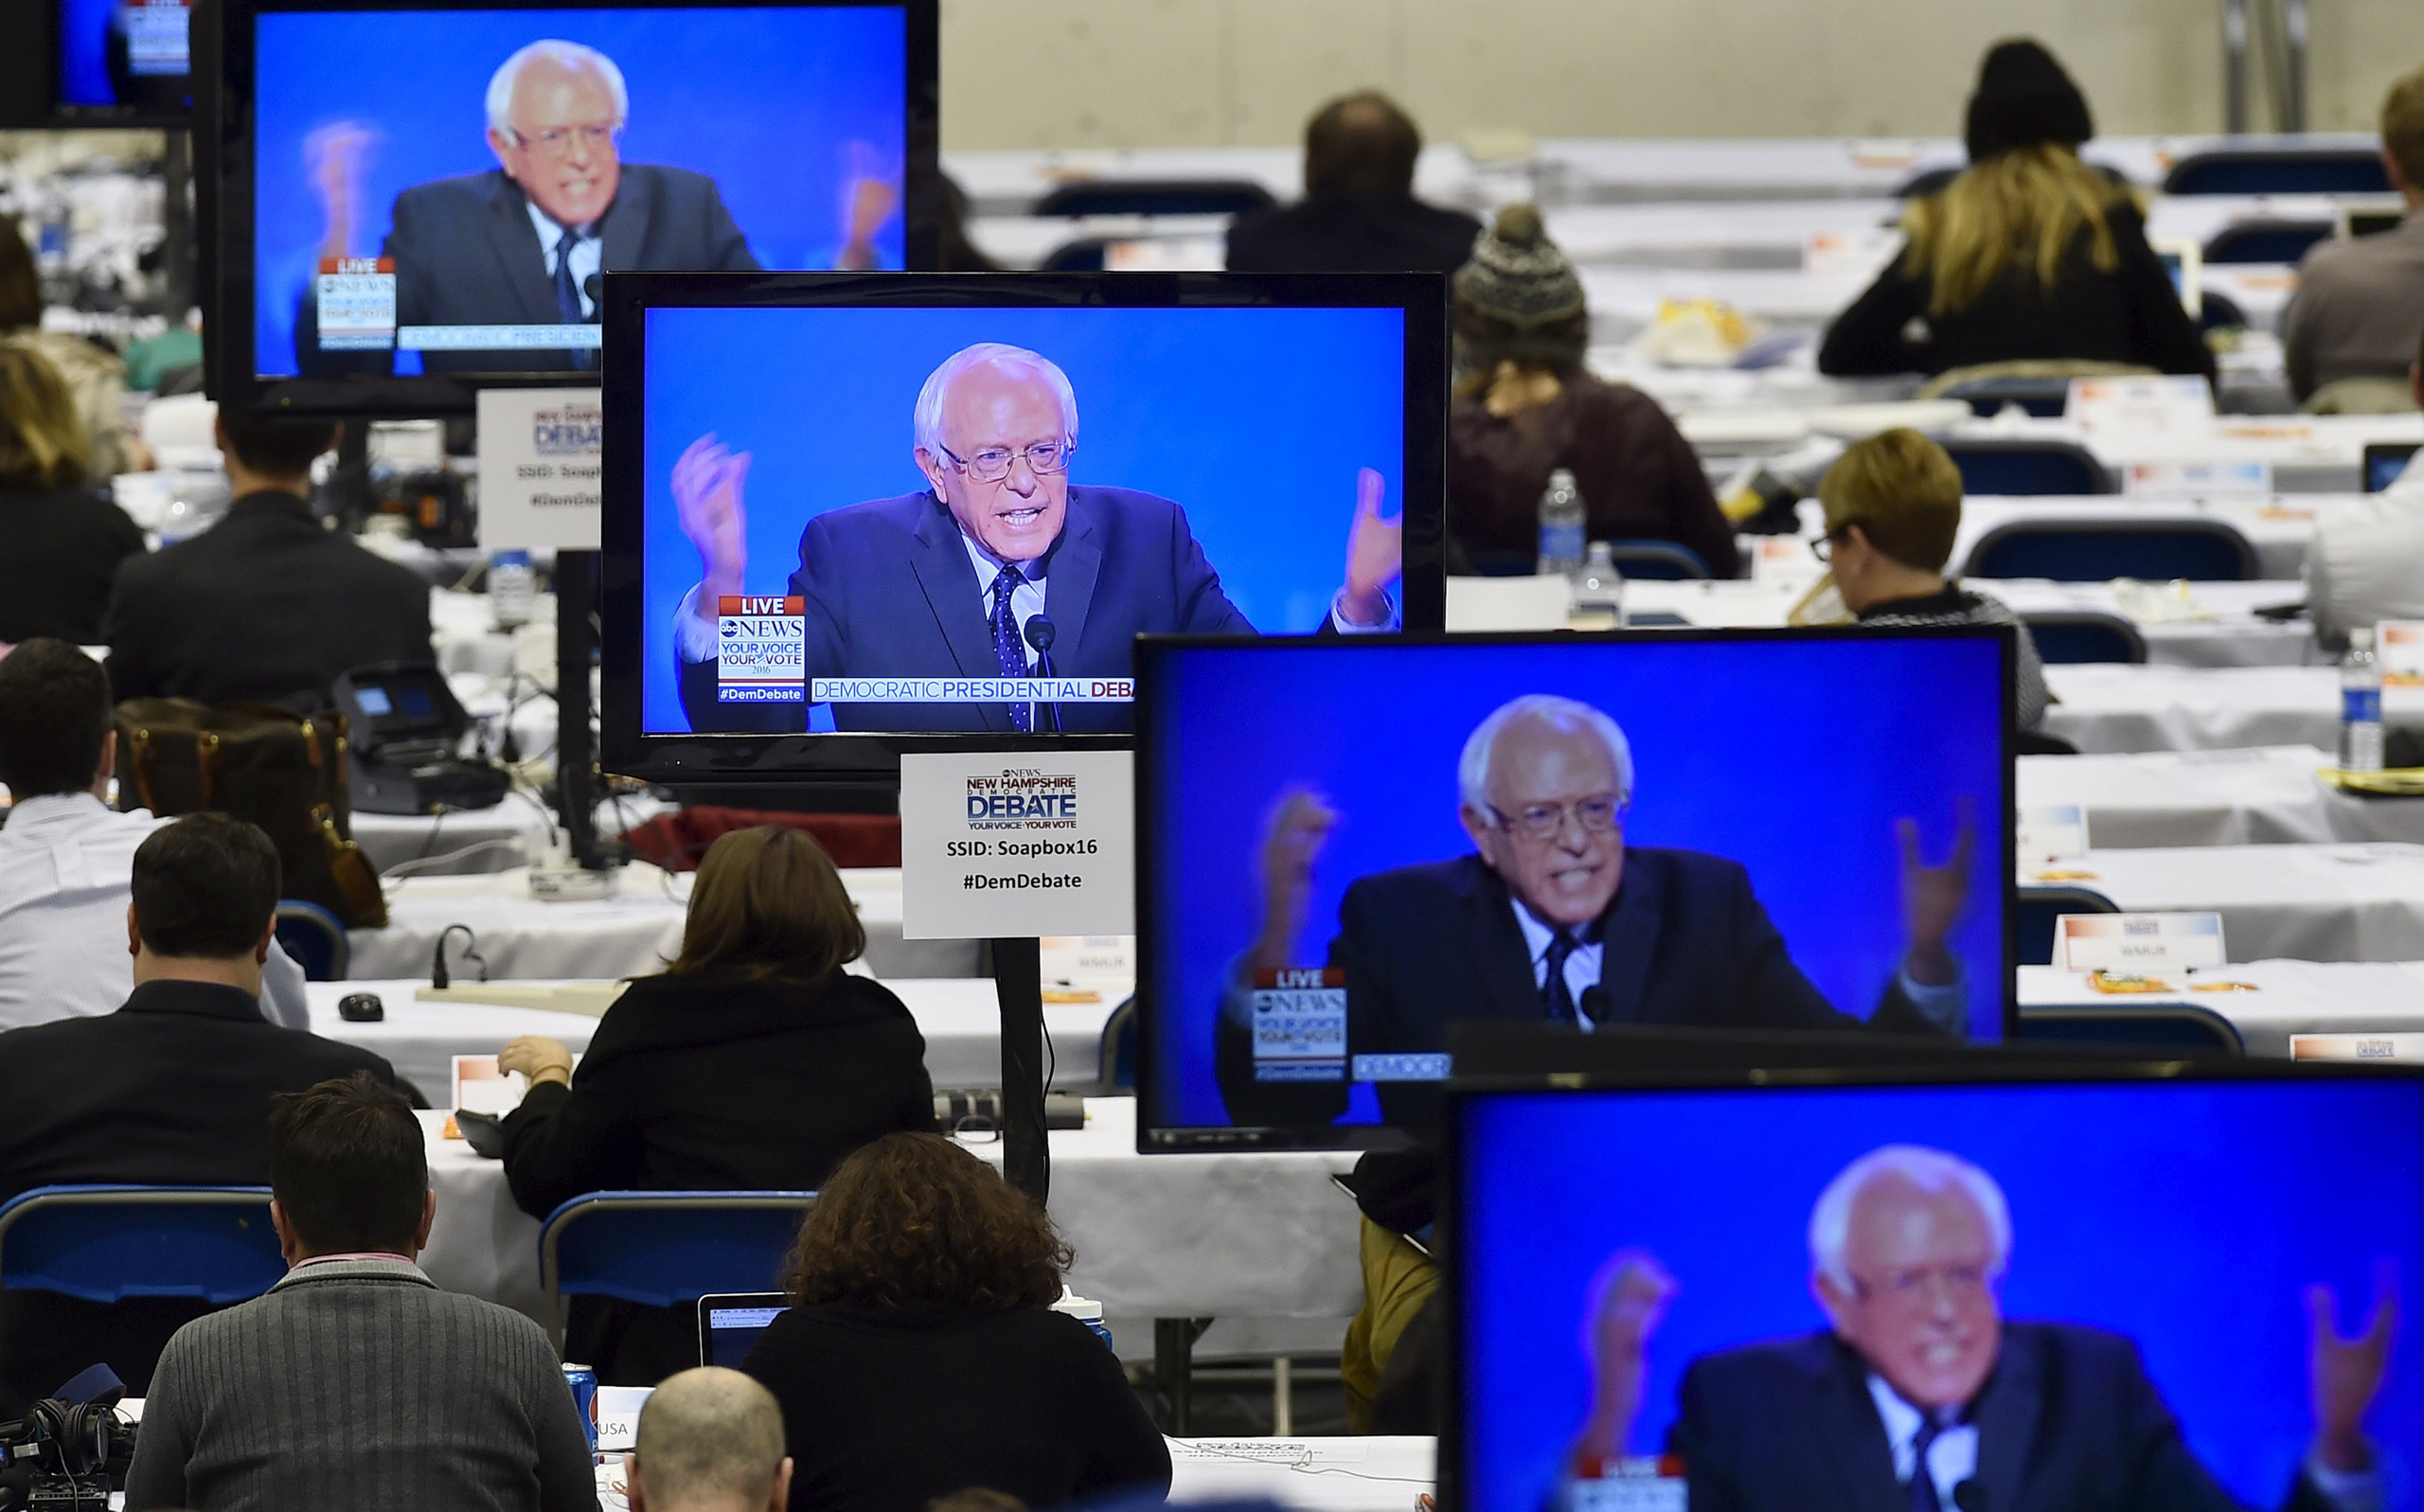 Bernie Sanders appears on television screens in the media work-room during the Democratic presidential candidates debate at Saint Anselm College in Manchester, N.H., on Dec. 19, 2015.